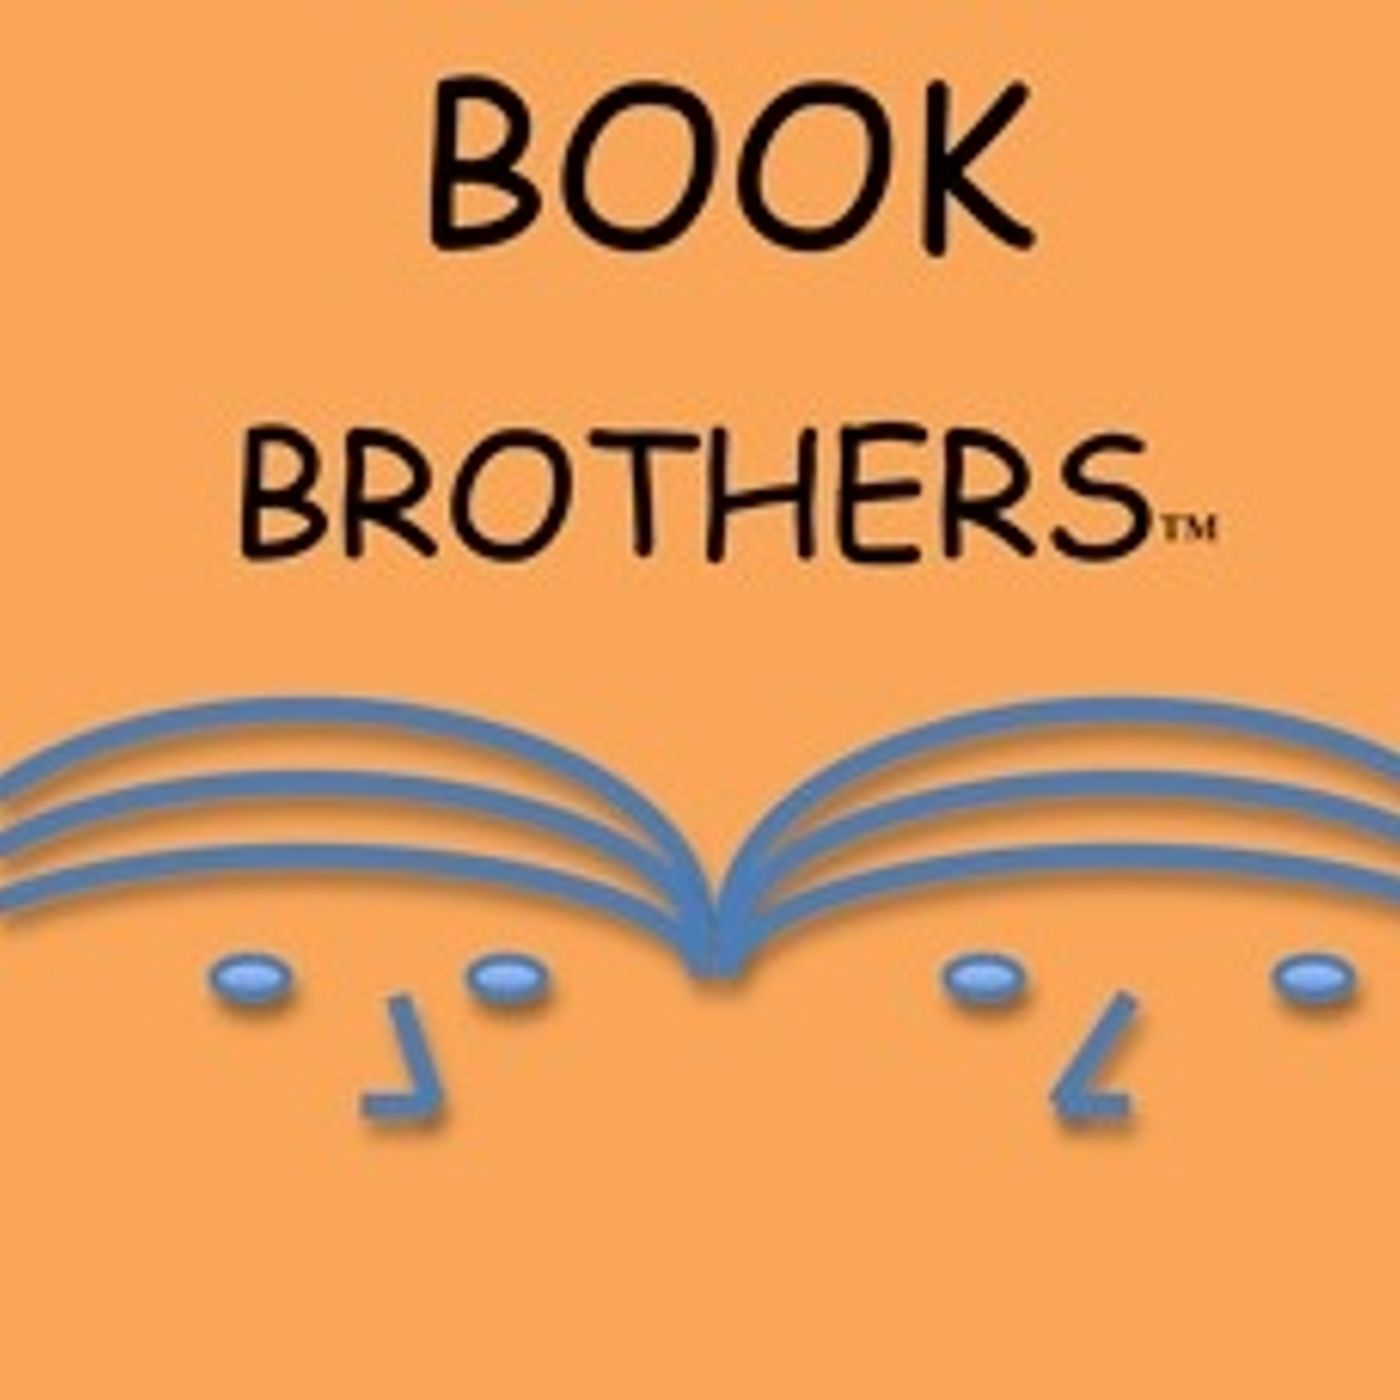 Book Brothers